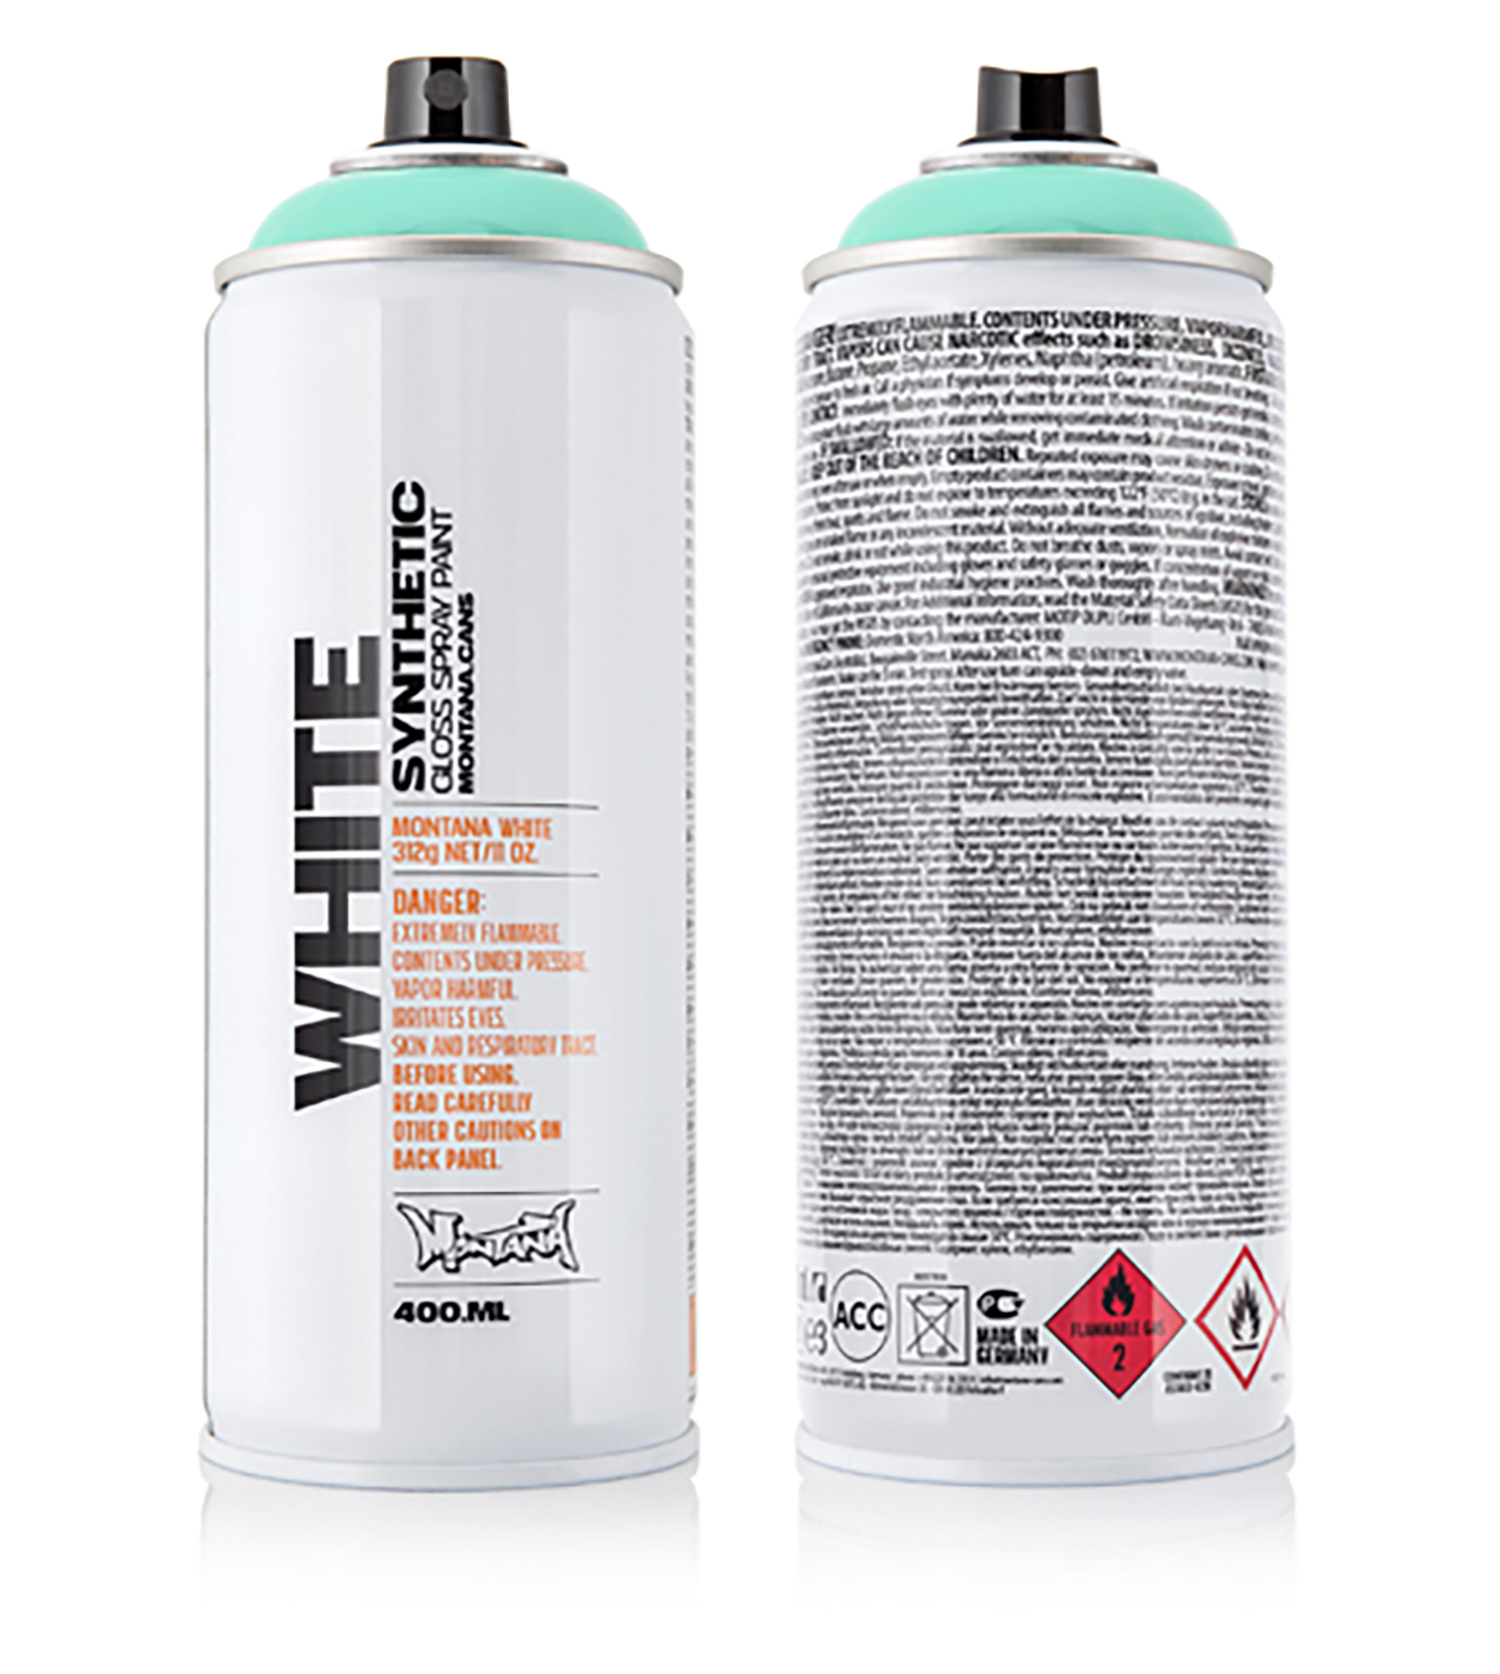 MONTANA-WHITE-SPRAY-400ML-6100